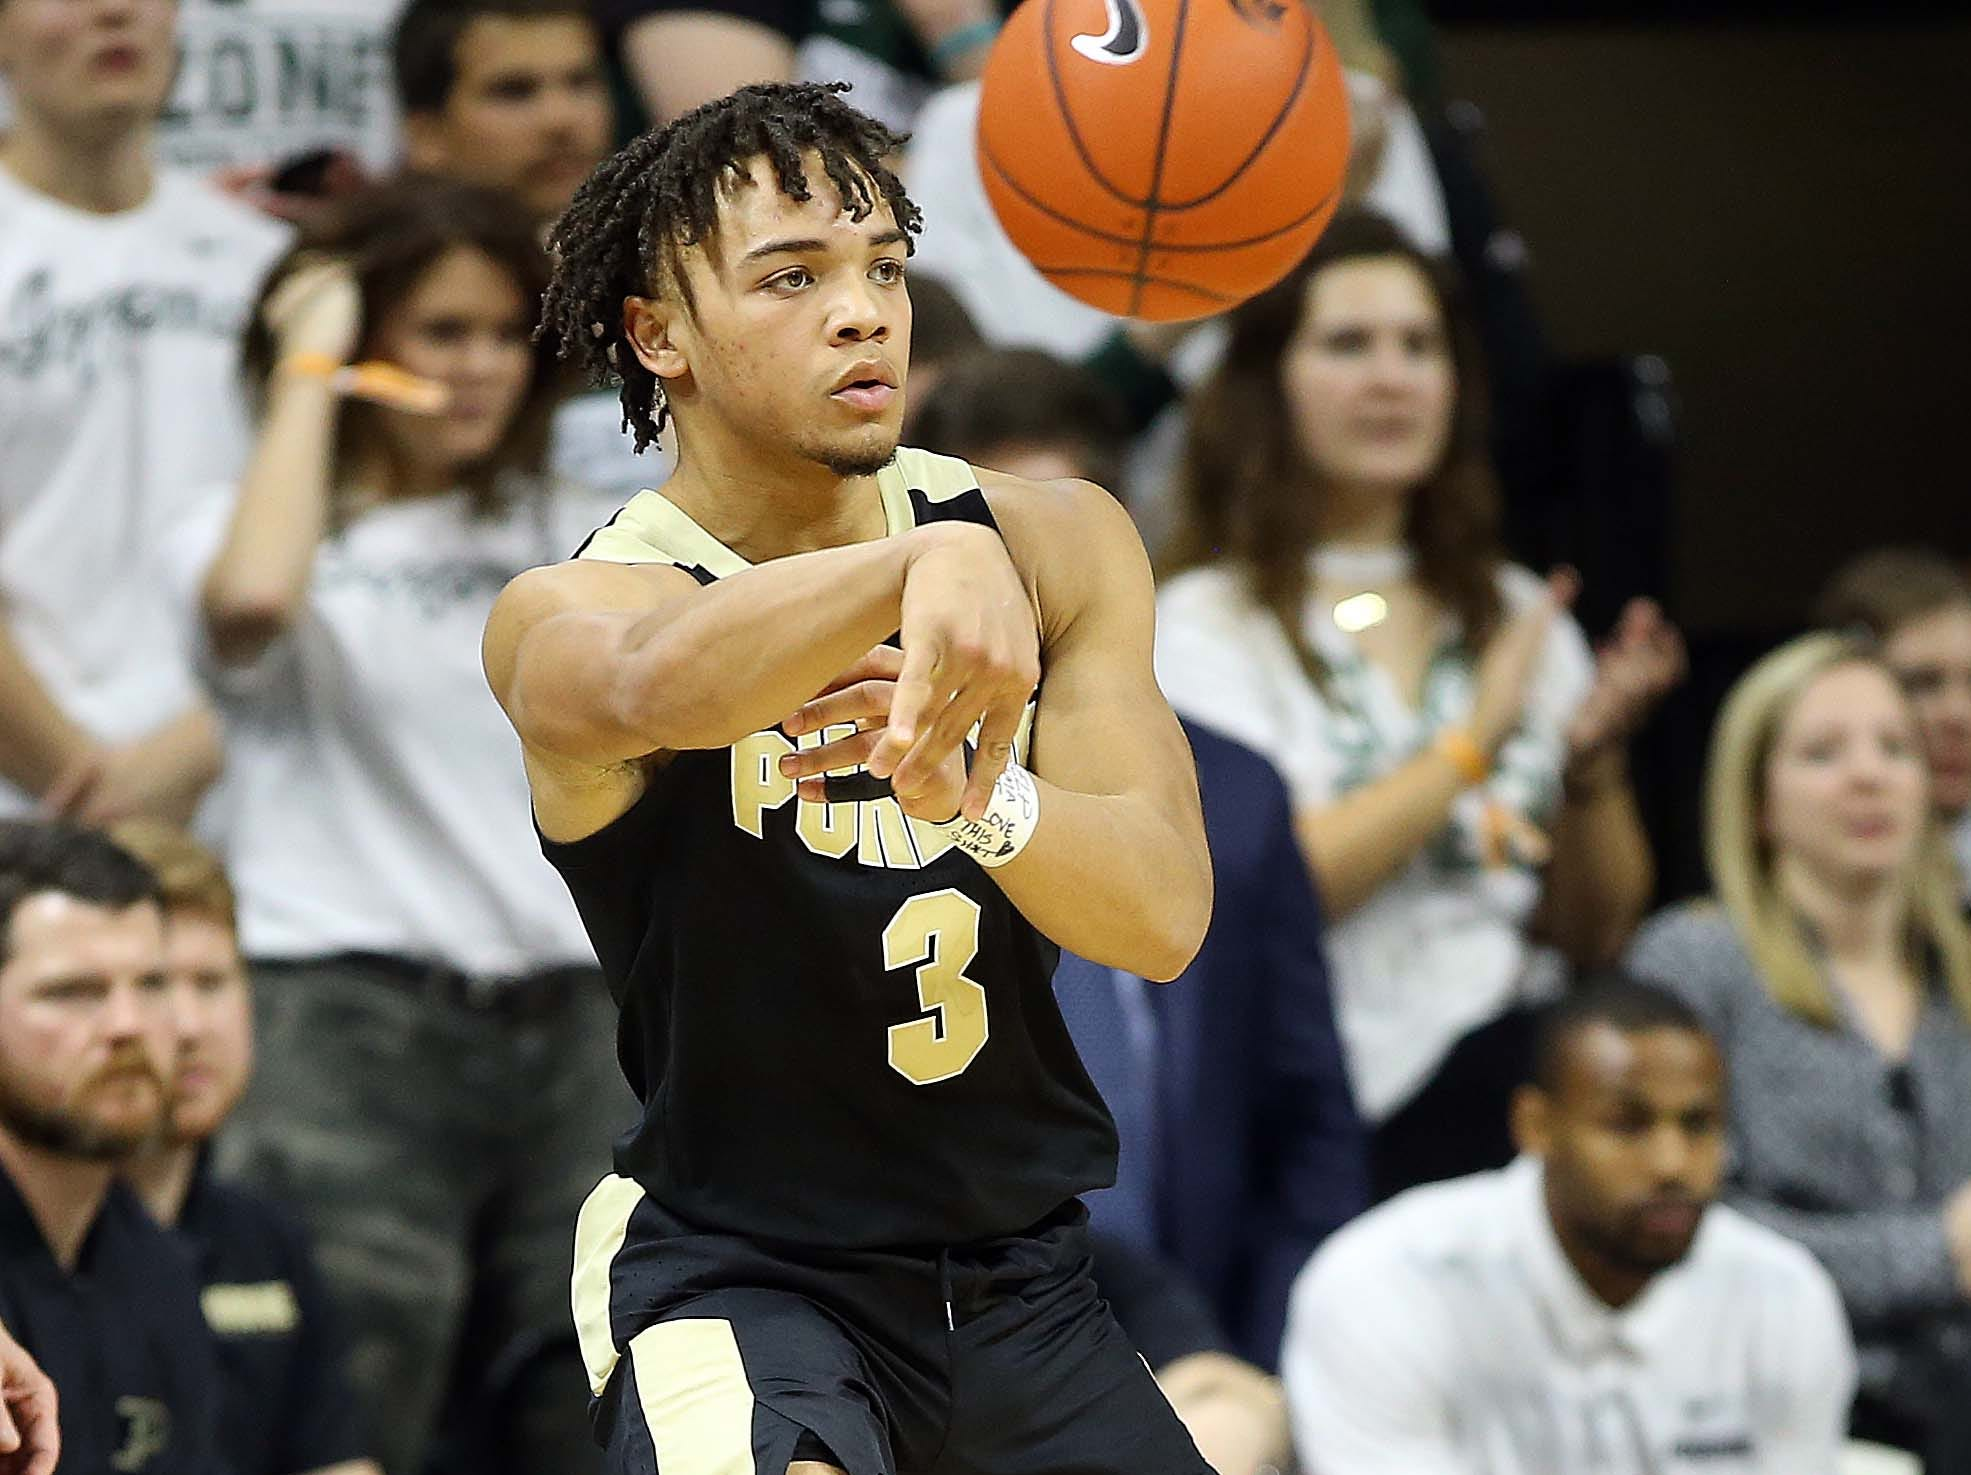 Jan 8, 2019; East Lansing, MI, USA; Purdue Boilermakers guard Carsen Edwards (3) passes the ball during the second half of a game against the Michigan State Spartans at the Breslin Center. Mandatory Credit: Mike Carter-USA TODAY Sports